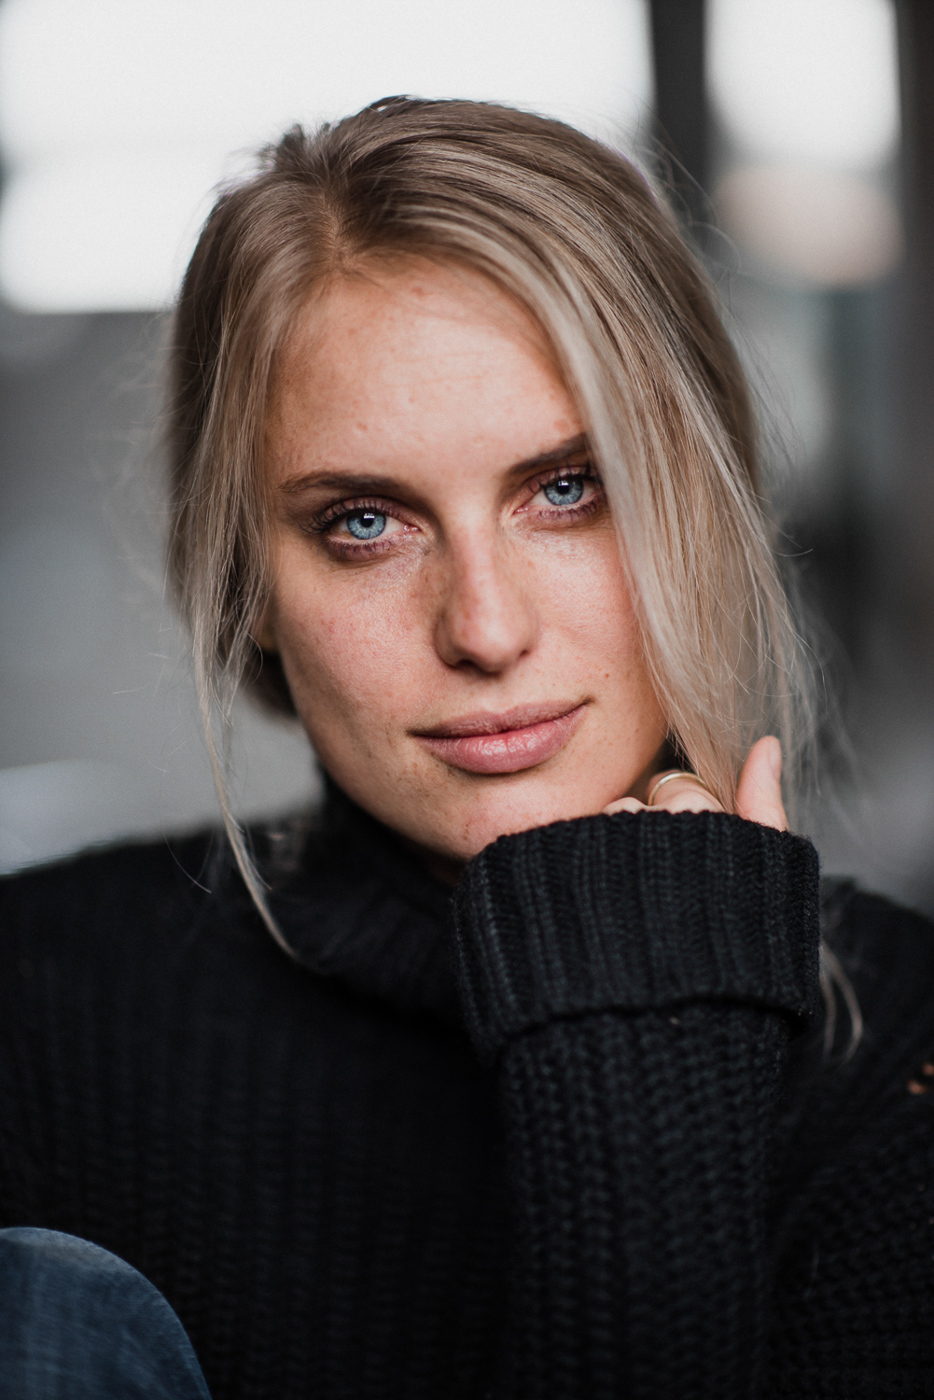 PHOCO Best of 2018 Photograph Fort Collins-4 Portrait Blonde Turtleneck Courtney Cyr.jpg